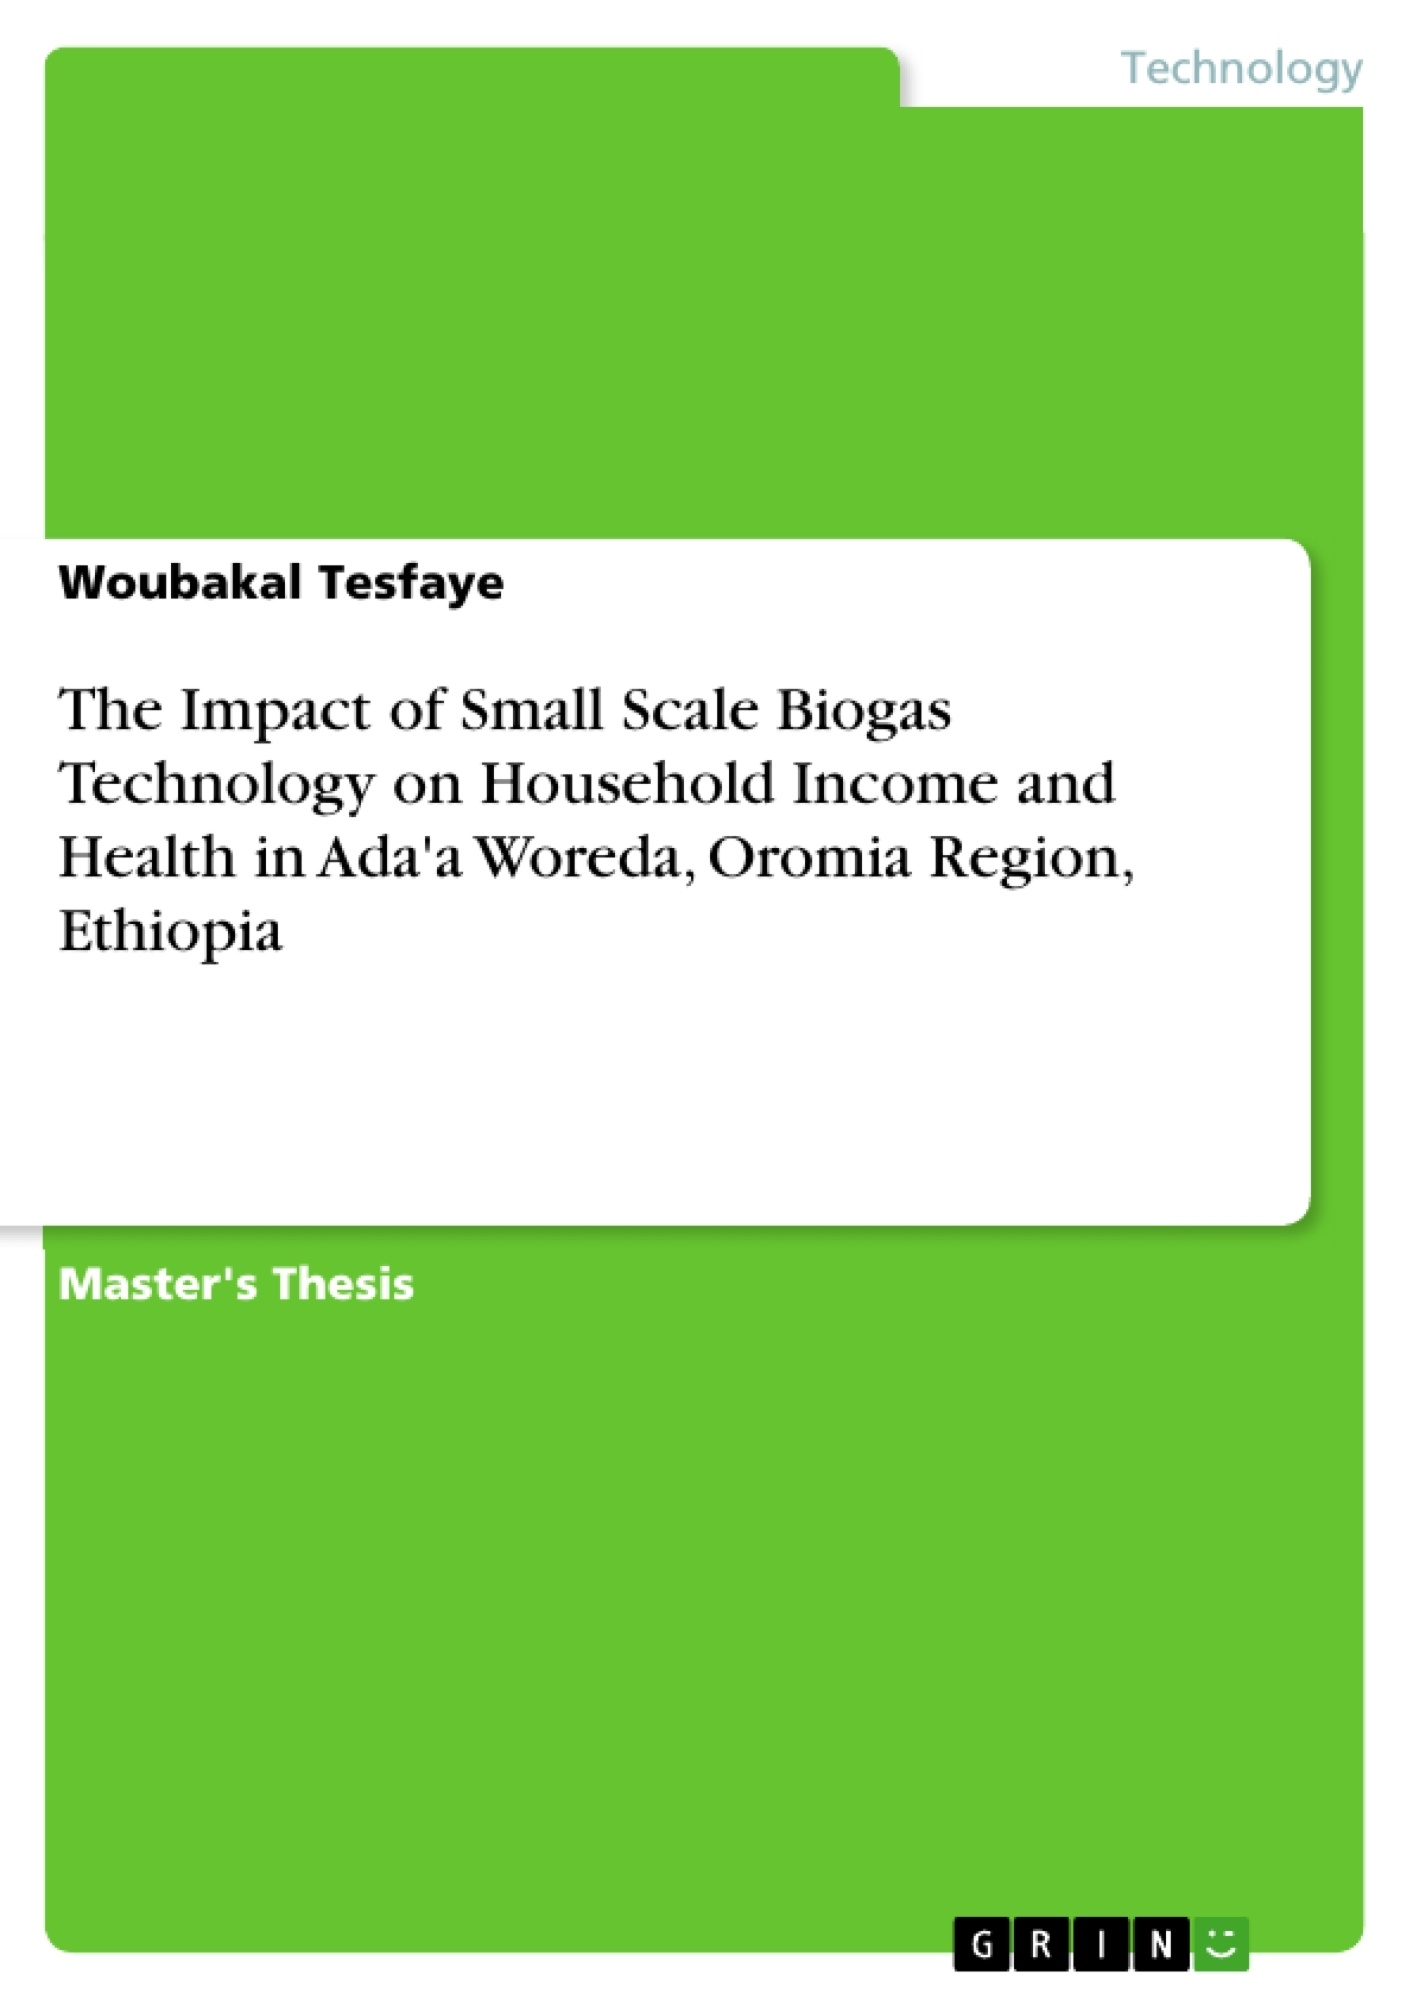 GRIN - The Impact of Small Scale Biogas Technology on Household Income and  Health in Ada'a Woreda, Oromia Region, Ethiopia